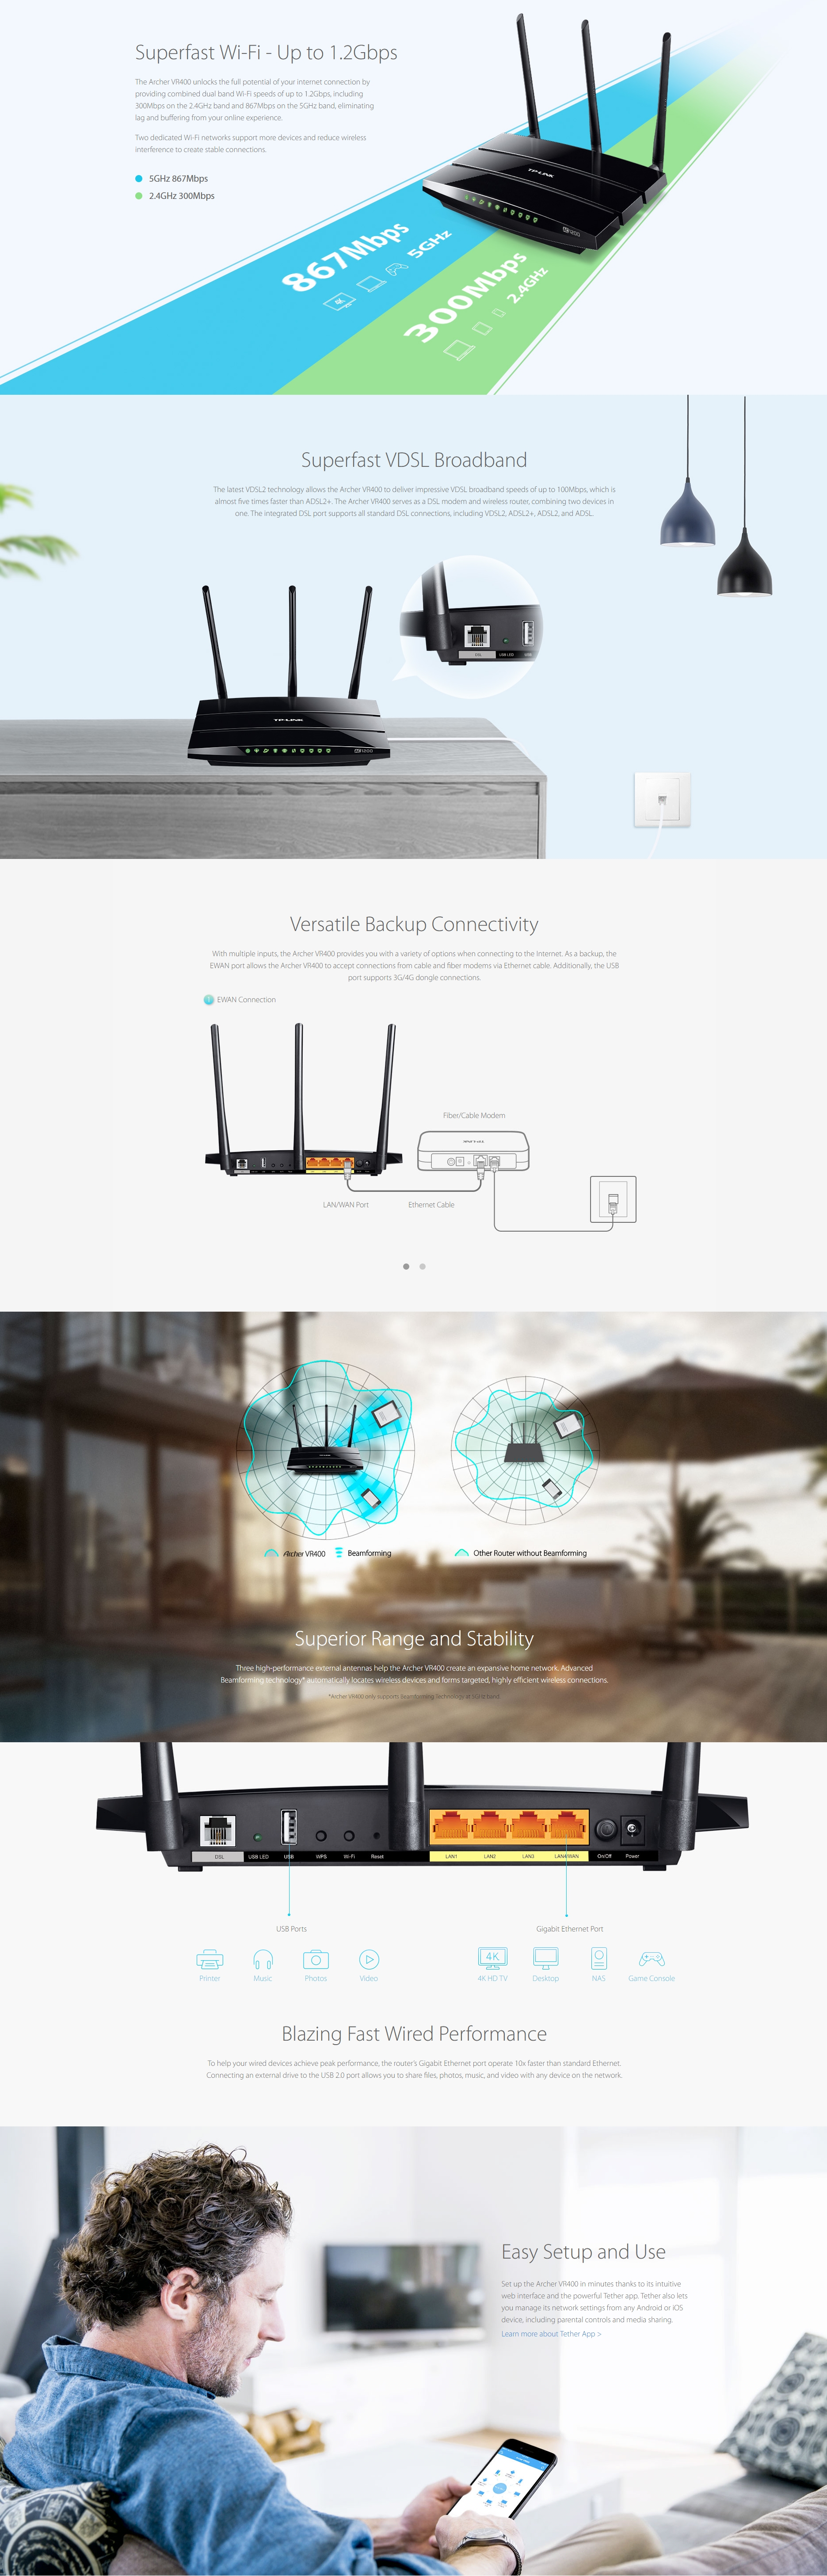 A large marketing image providing additional information about the product TP-LINK Archer VR400 AC1200 Wireless Dual Band VDSL/ADSL Modem Router - Additional alt info not provided